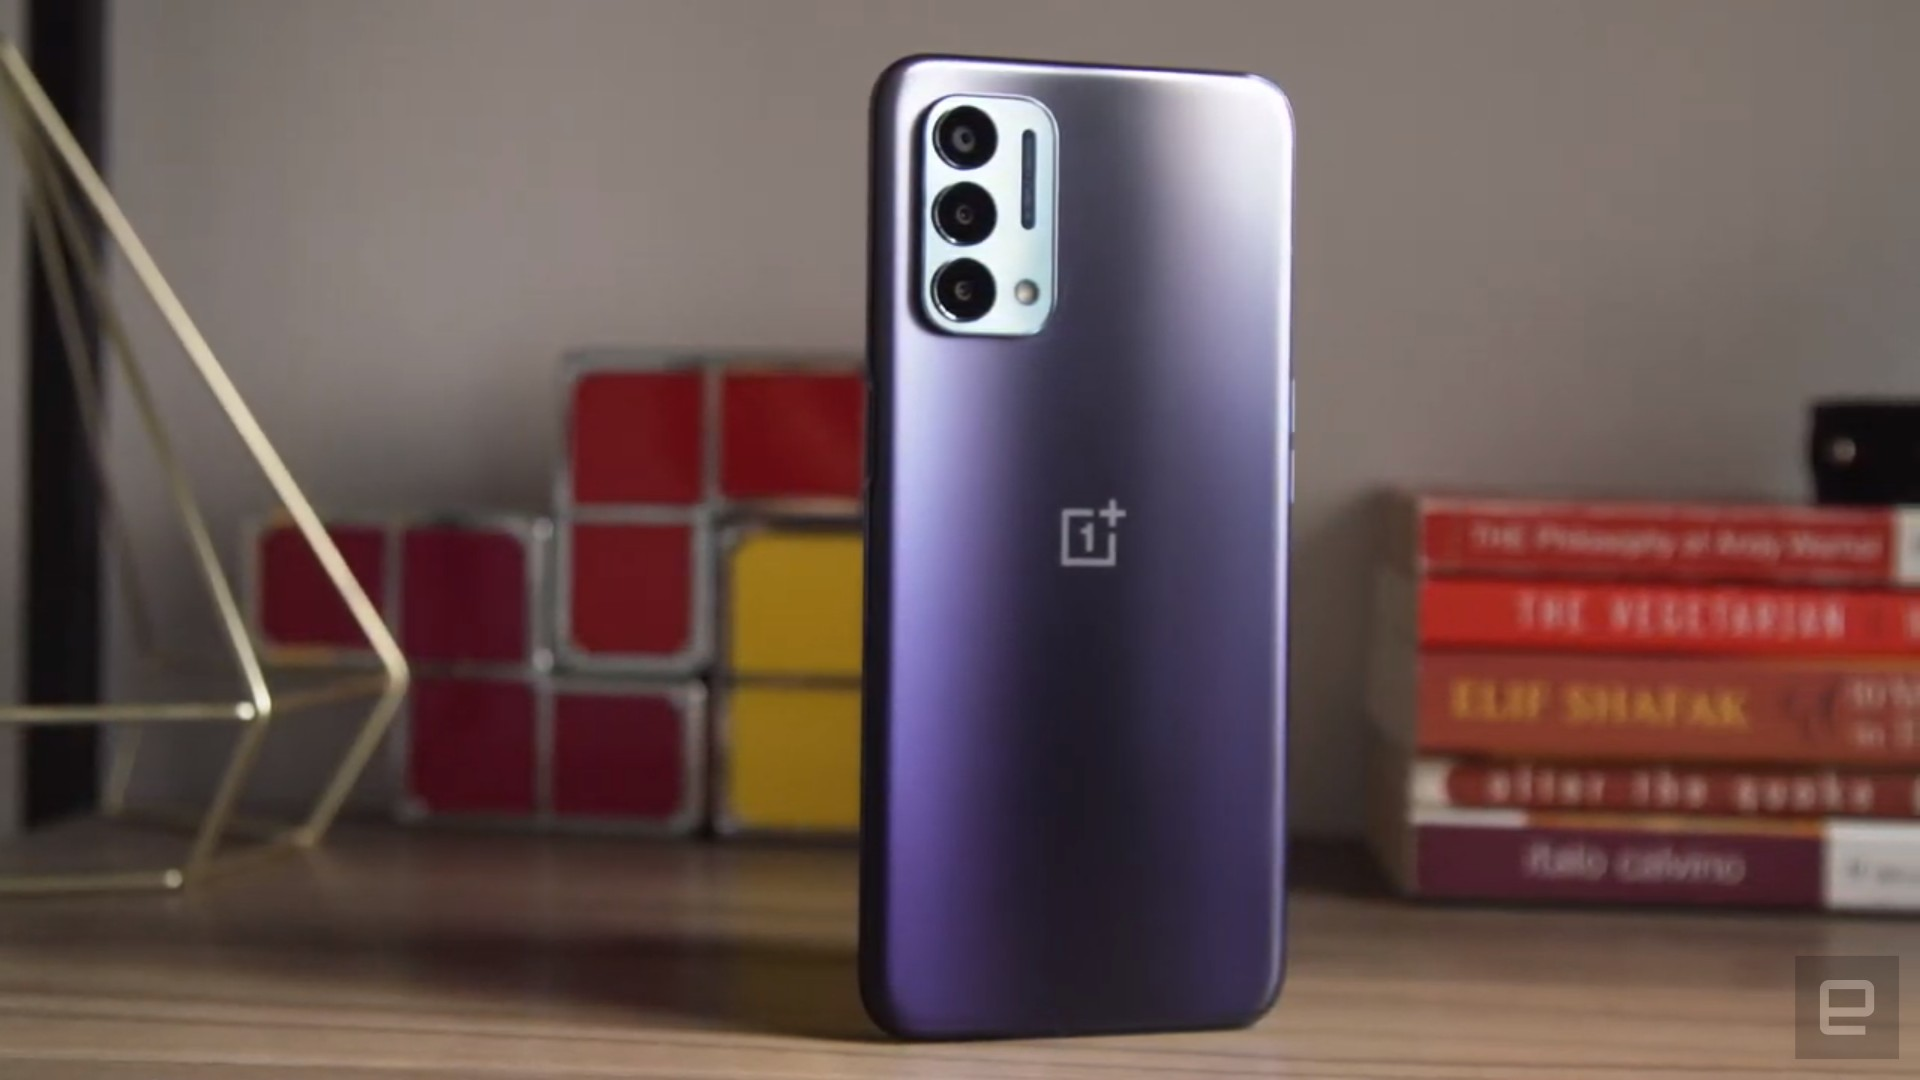 <p>OnePlus Nord N200 5G review picture. Off angle view of the phone sitting on a shelf with ornaments in the background with its rear facing outwards.&nbsp;</p>